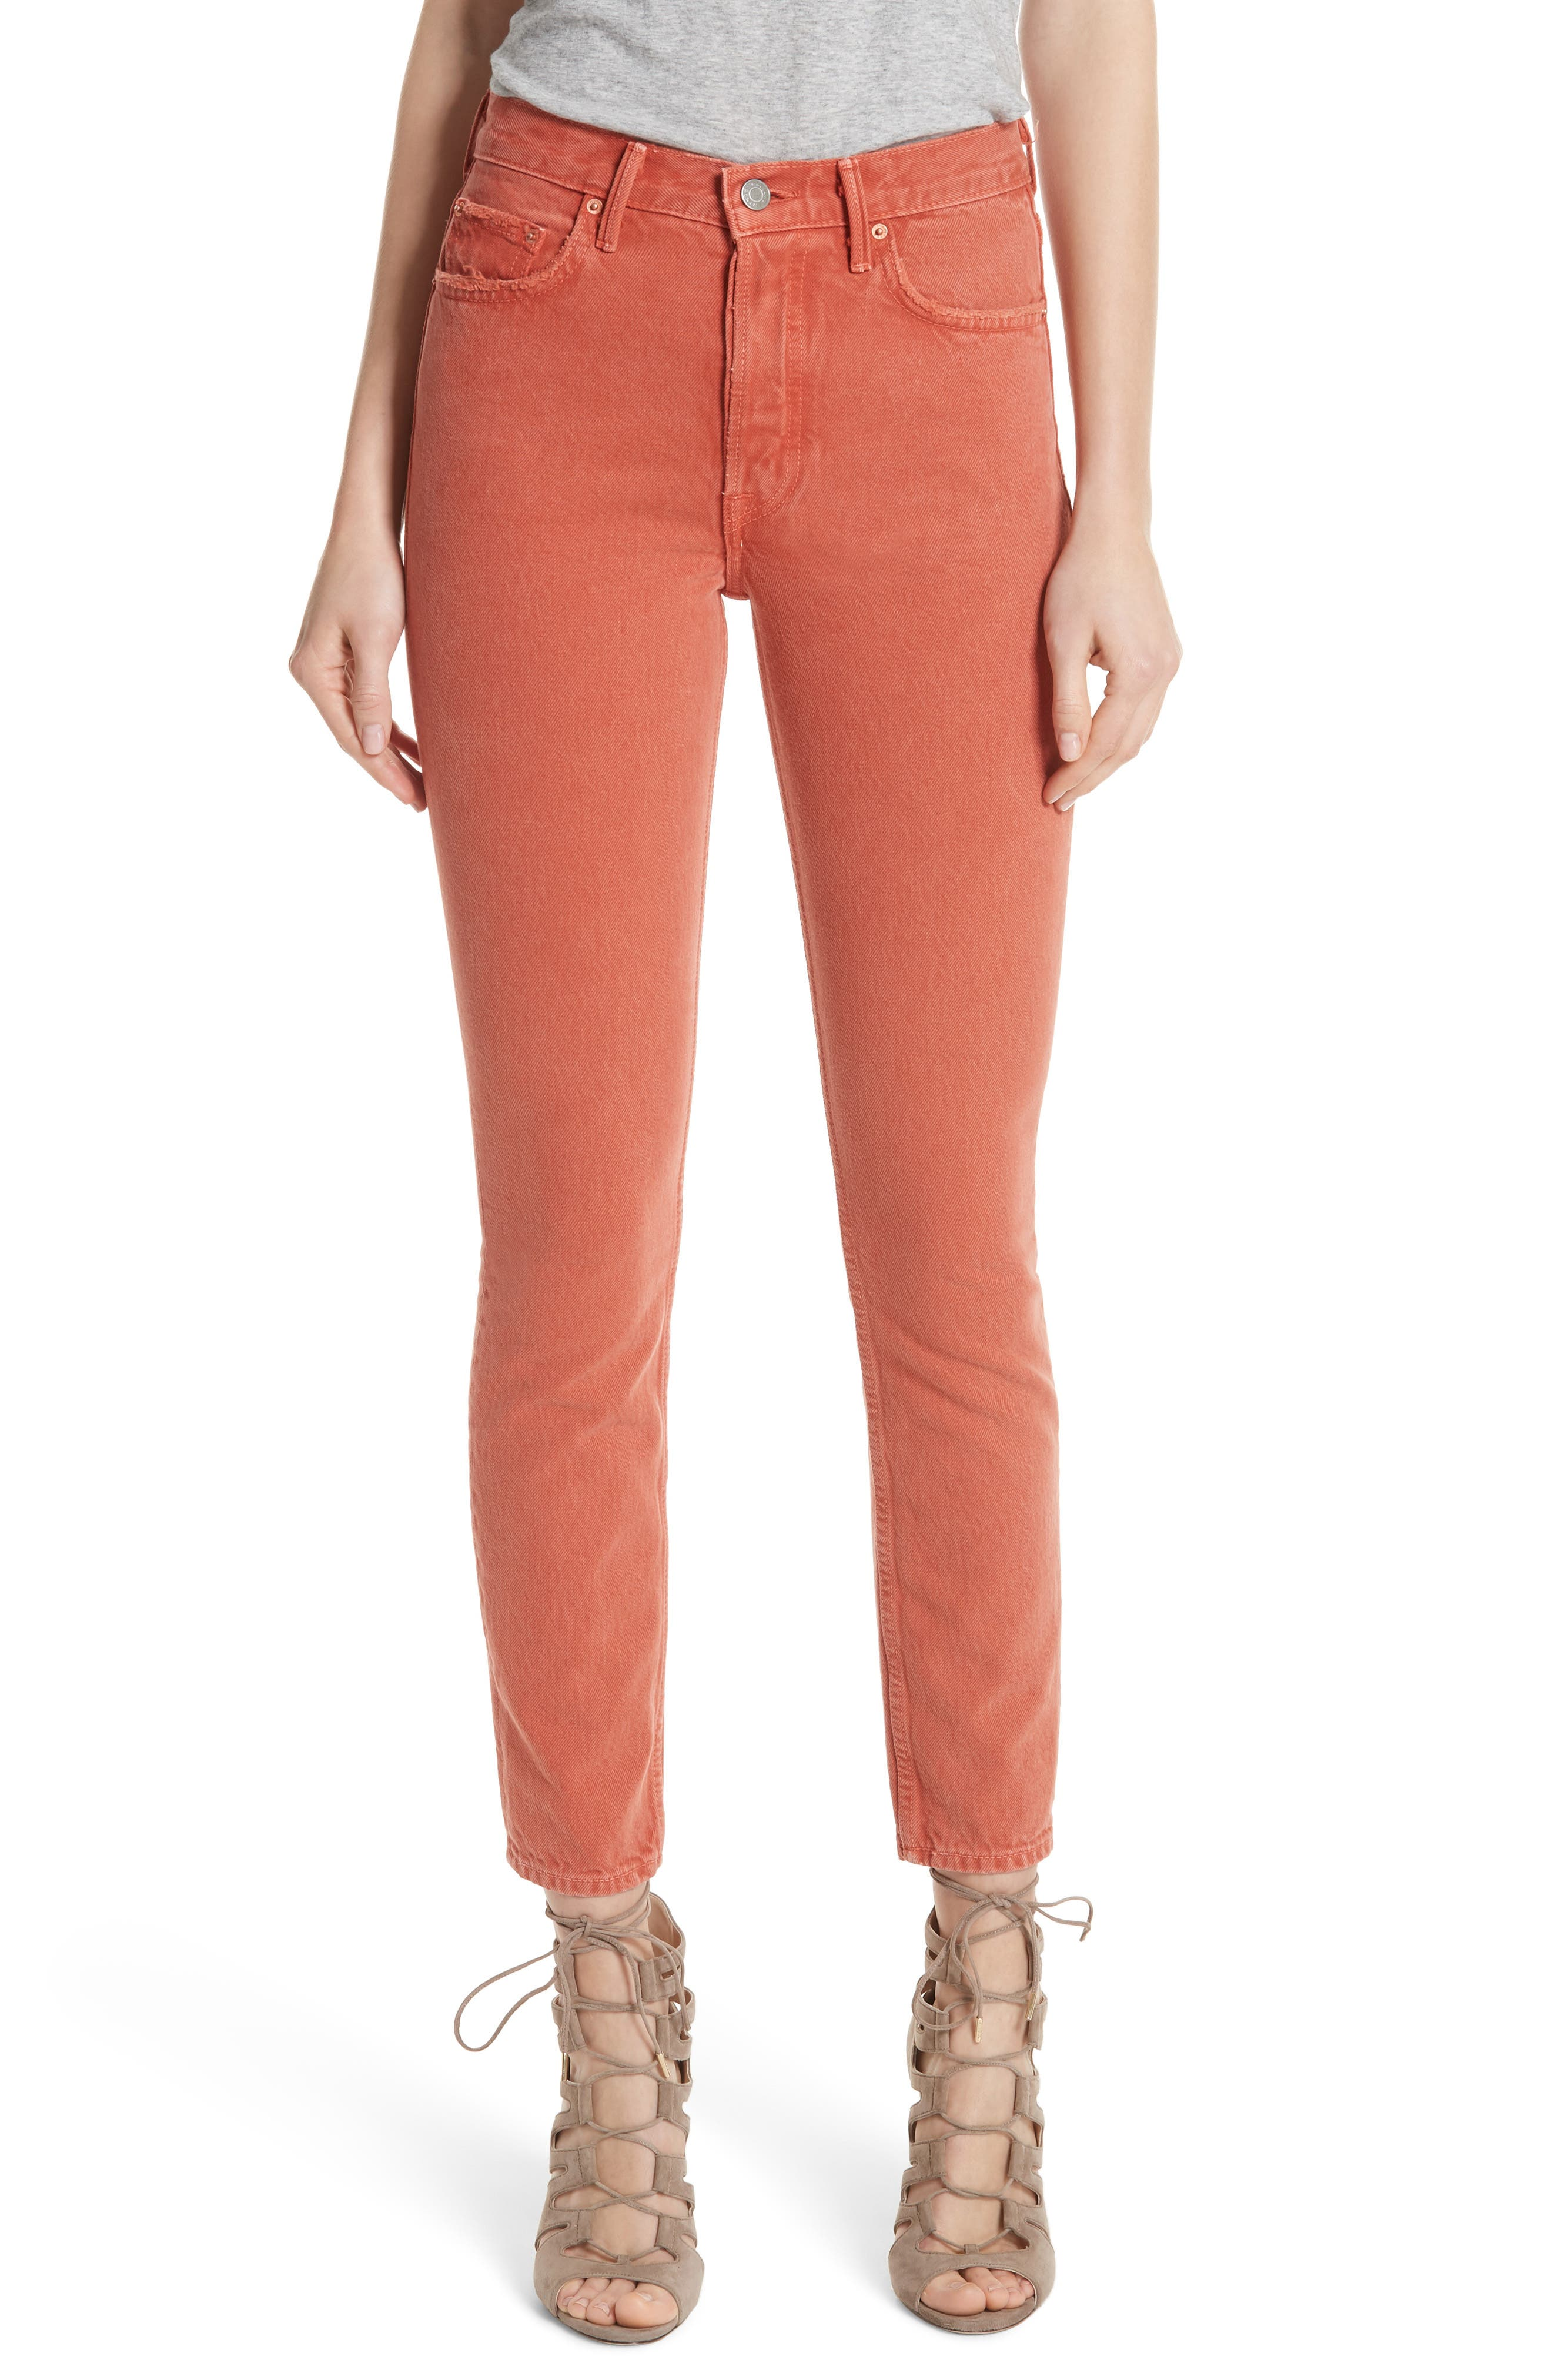 Karolina High Waist Skinny Jeans,                             Main thumbnail 1, color,                             MARRAKECH